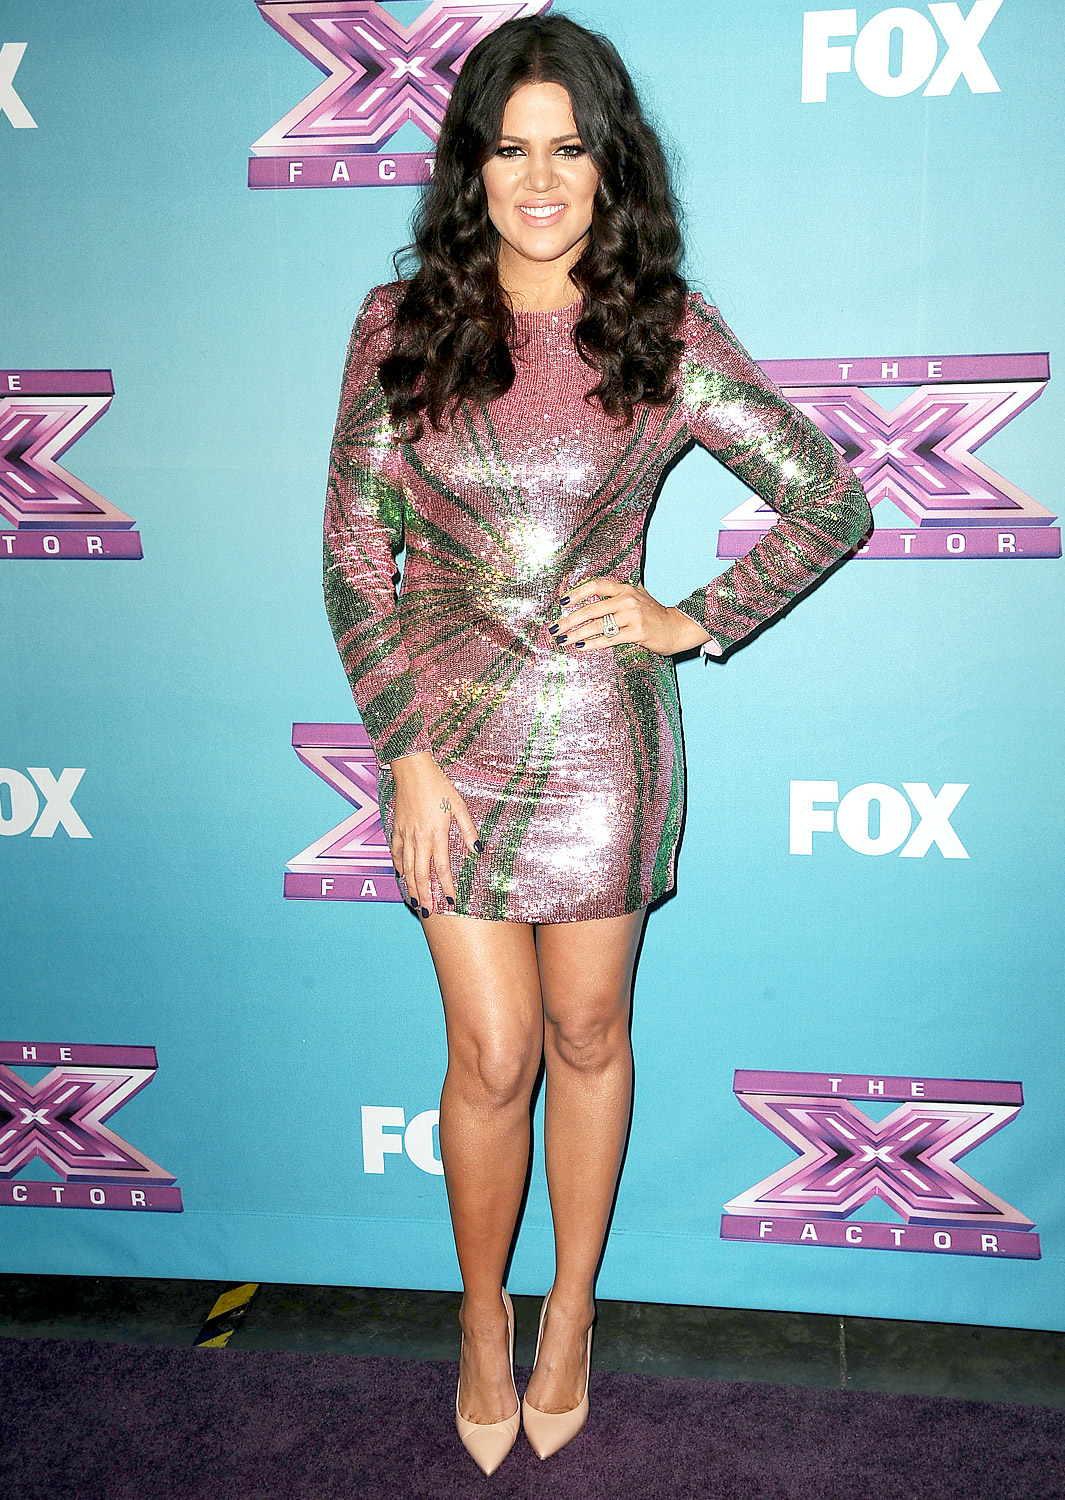 """Khloé noticeably shed pounds while she was hosting The X Factor in fall 2012 alongside Mario Lopez, thanks to boxing classes and changing her eating habits. """"I could have done a lot of unhealthy things to lose weight, and I'm proud for all the criticism I've taken and haven't done that,"""" she has said."""